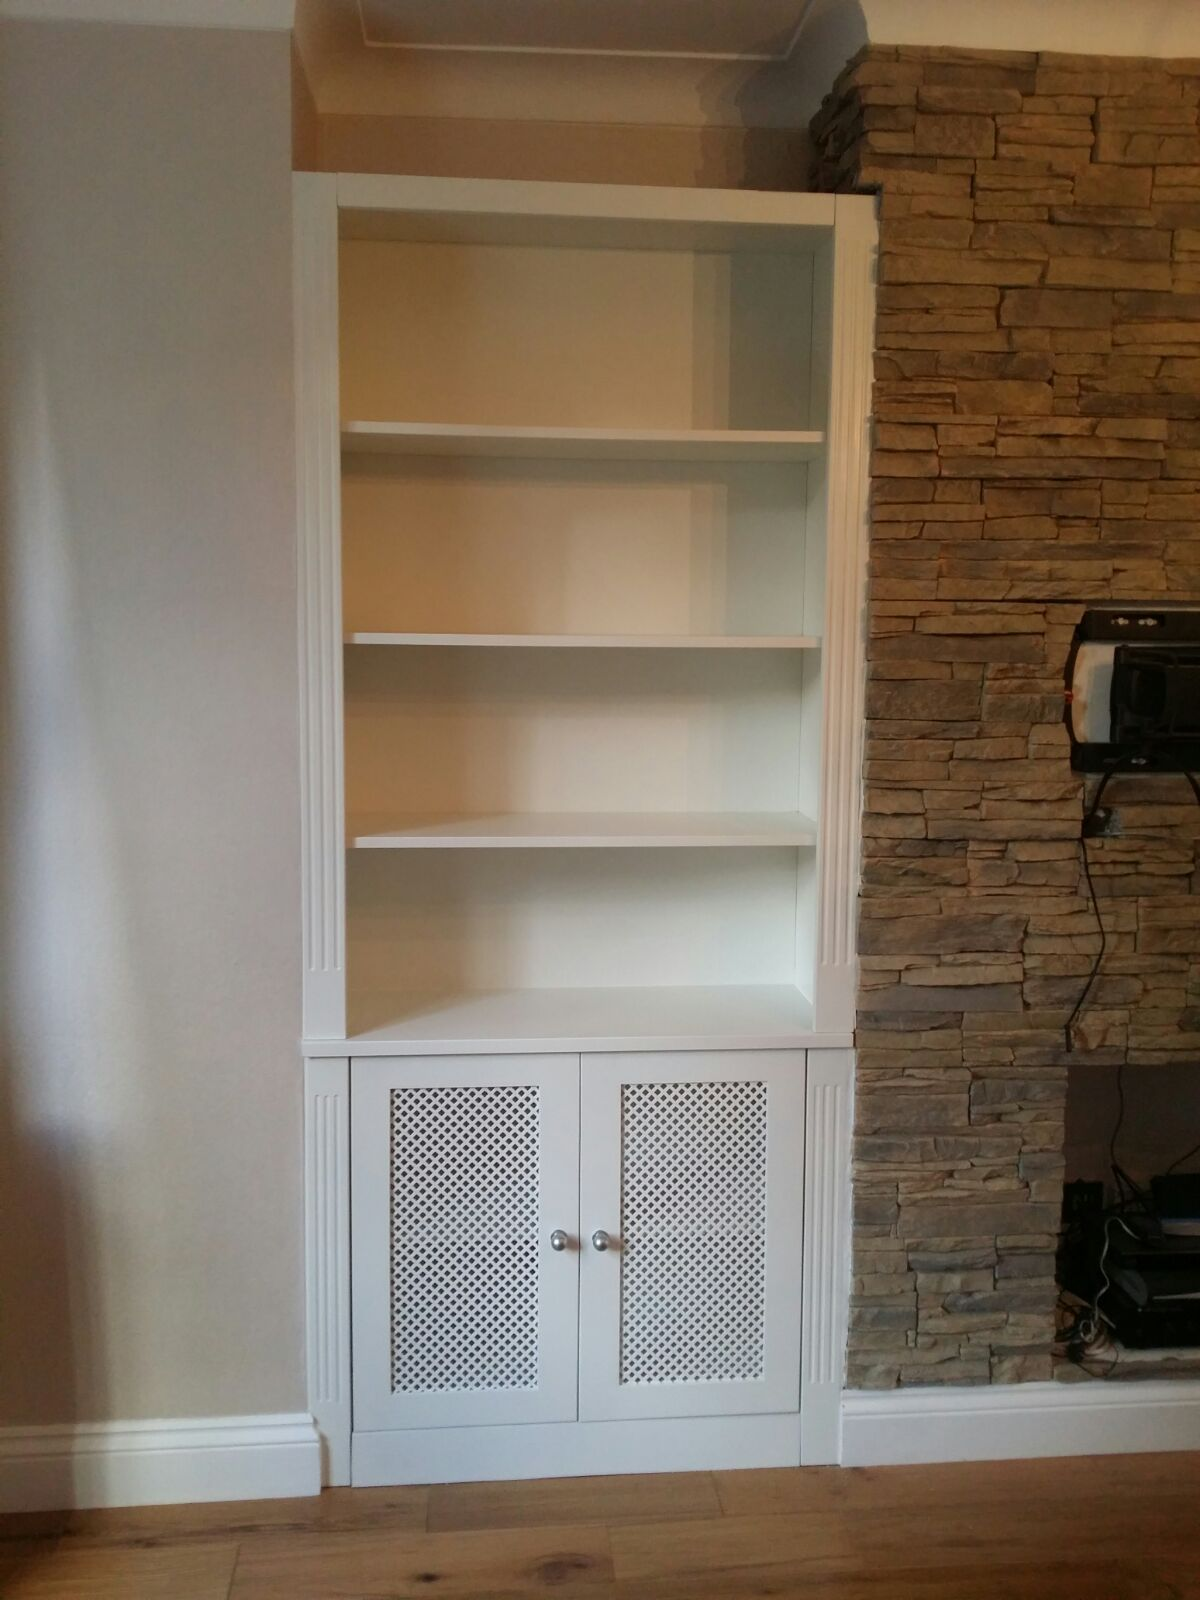 Cabinet With A Radiator Cover And Bookcase Above Radiator Cover